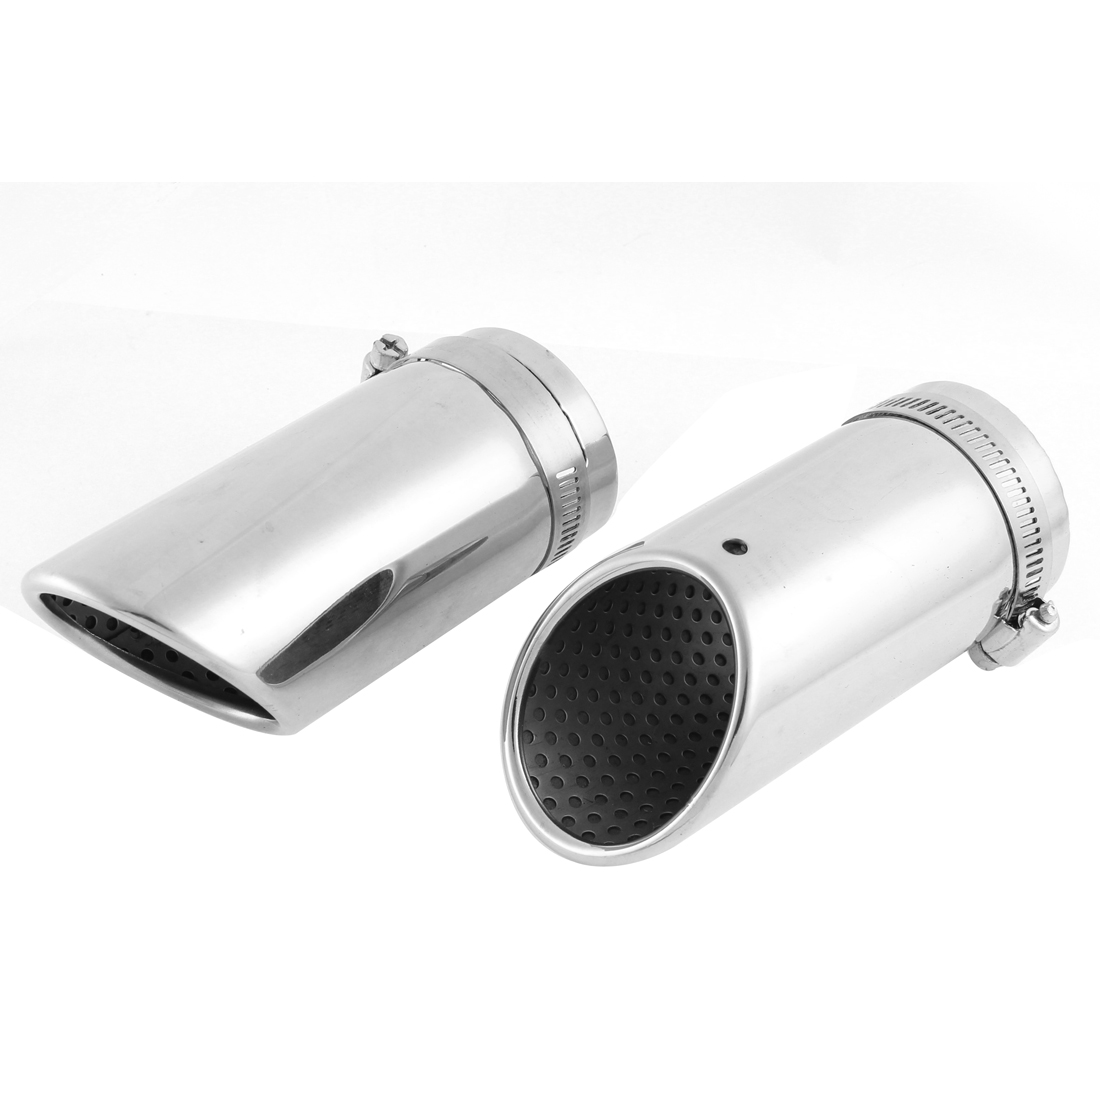 2 x 55mm Inlet Dia Stainless Steel Exhaust Pipe Tail Muffler Tip for Benz C180K